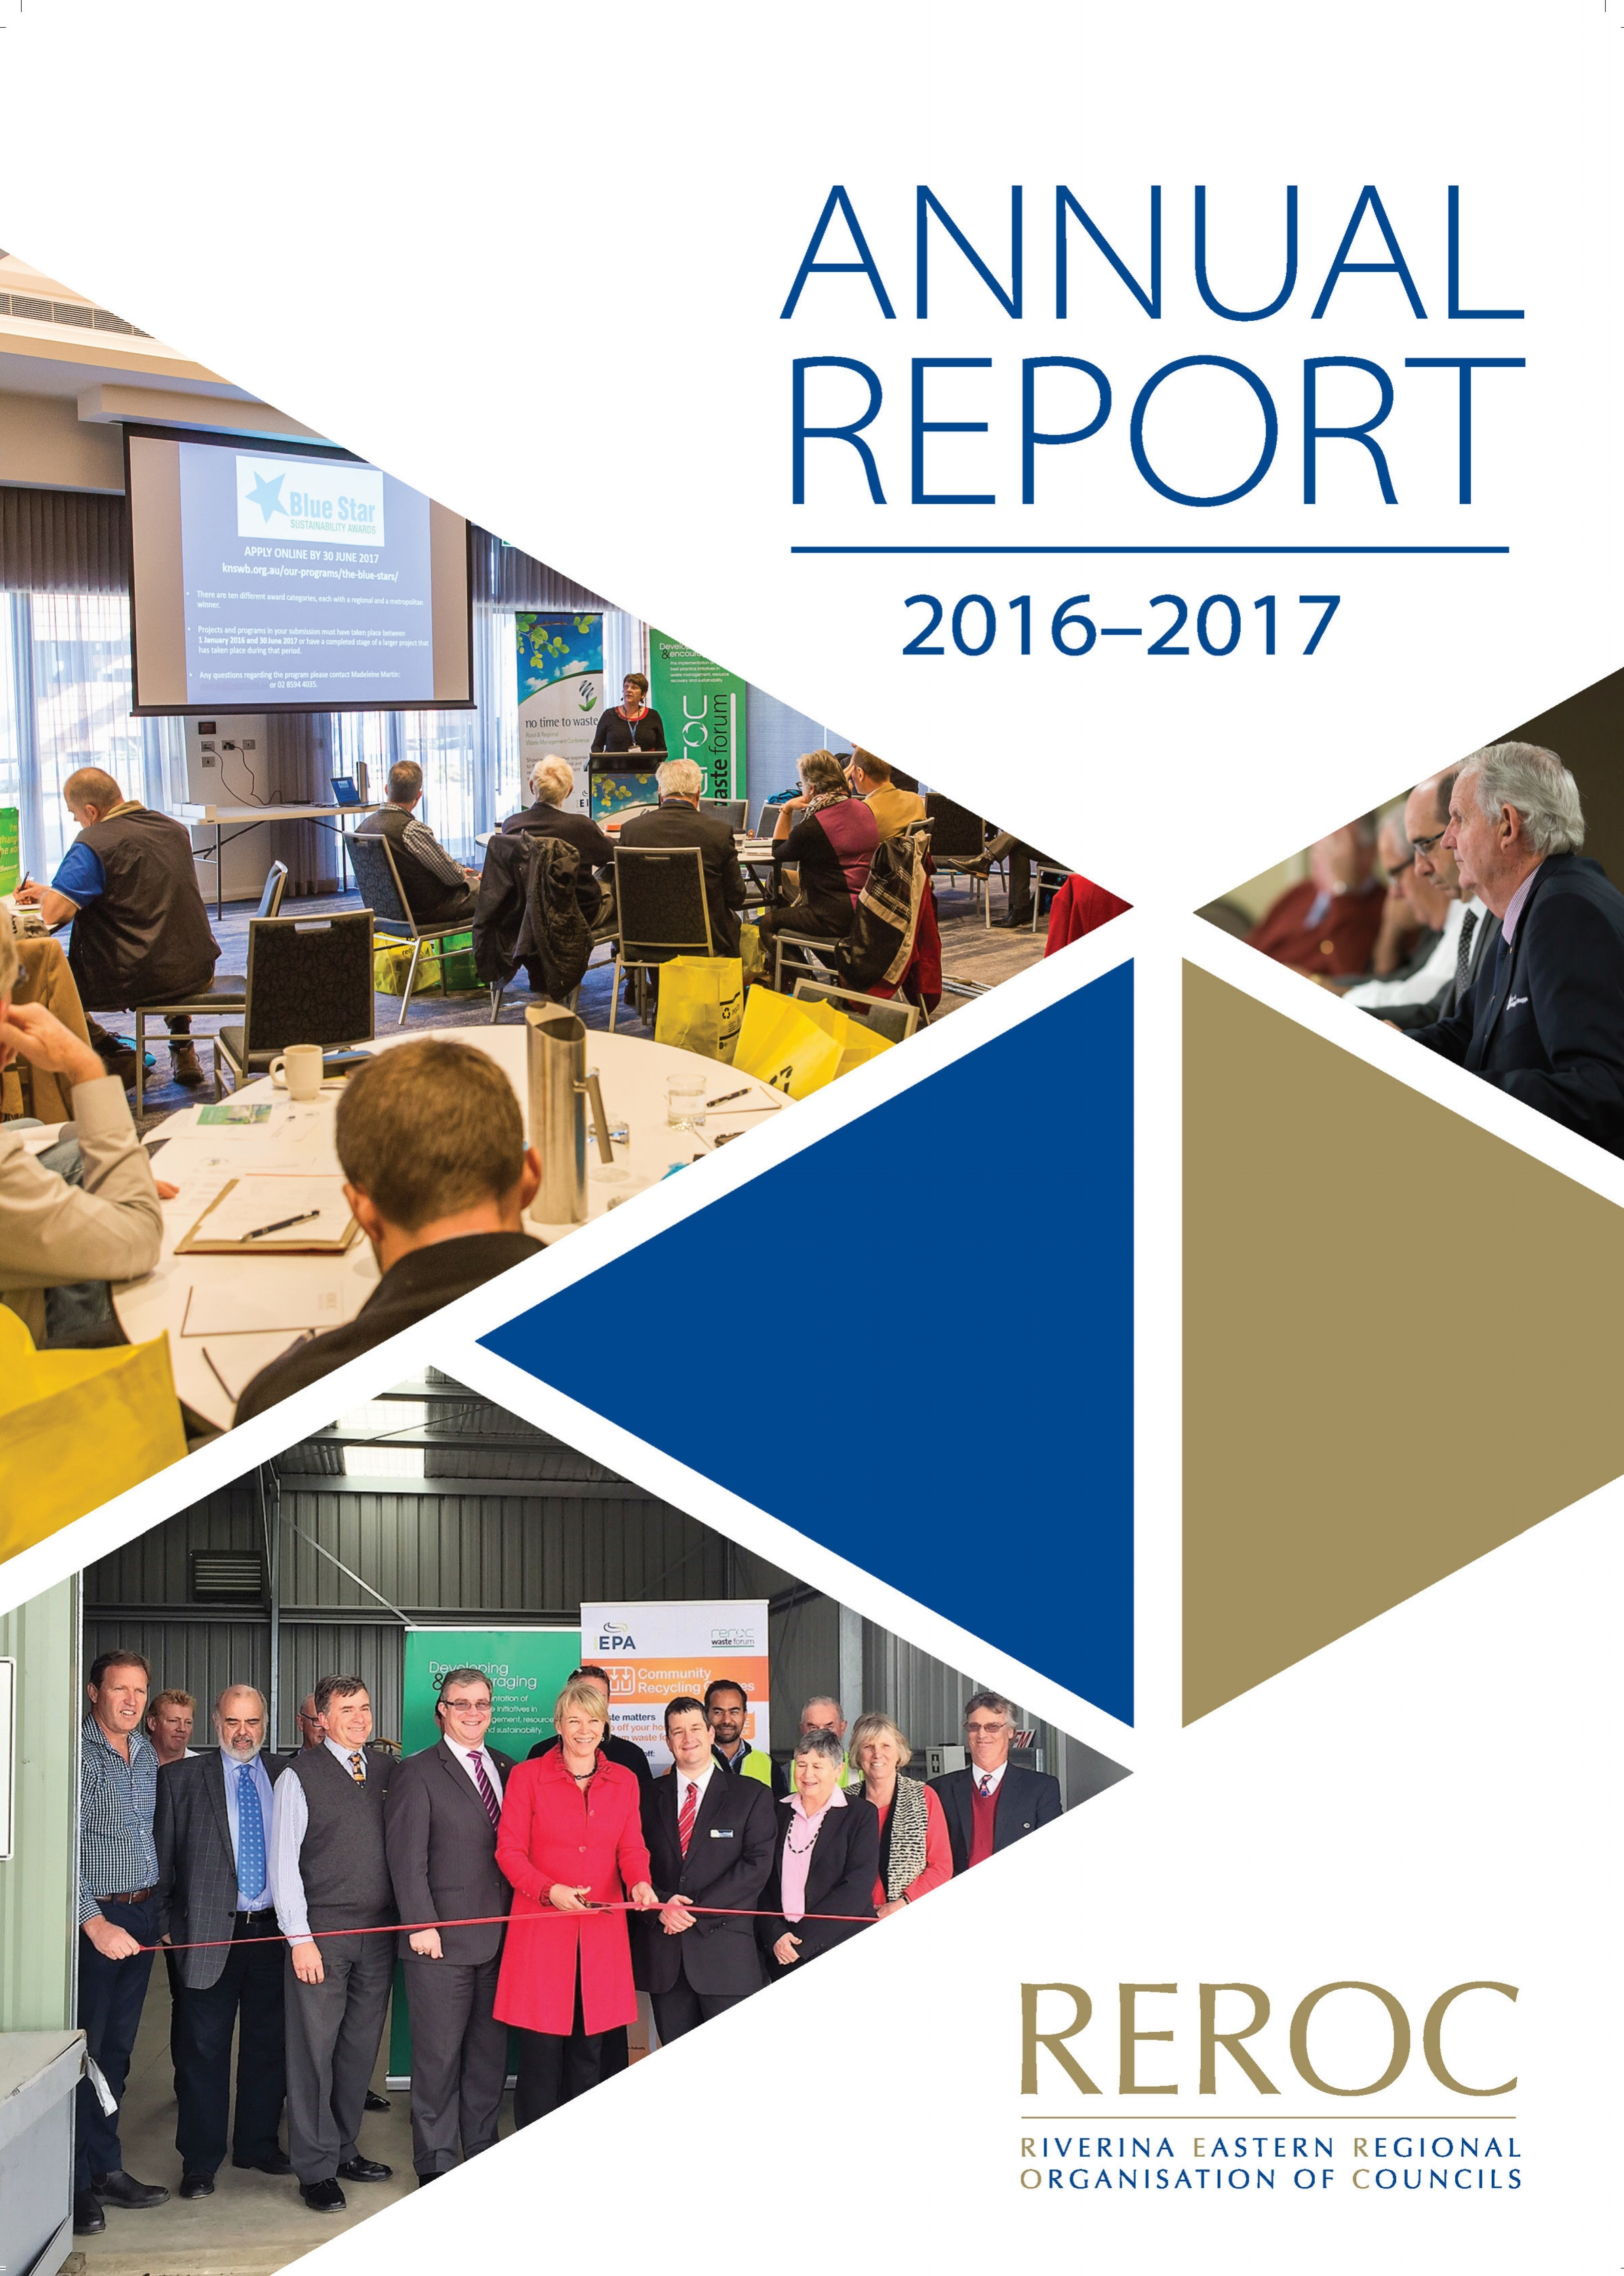 REROC Annual Report 2016-17_Page_01.jpg